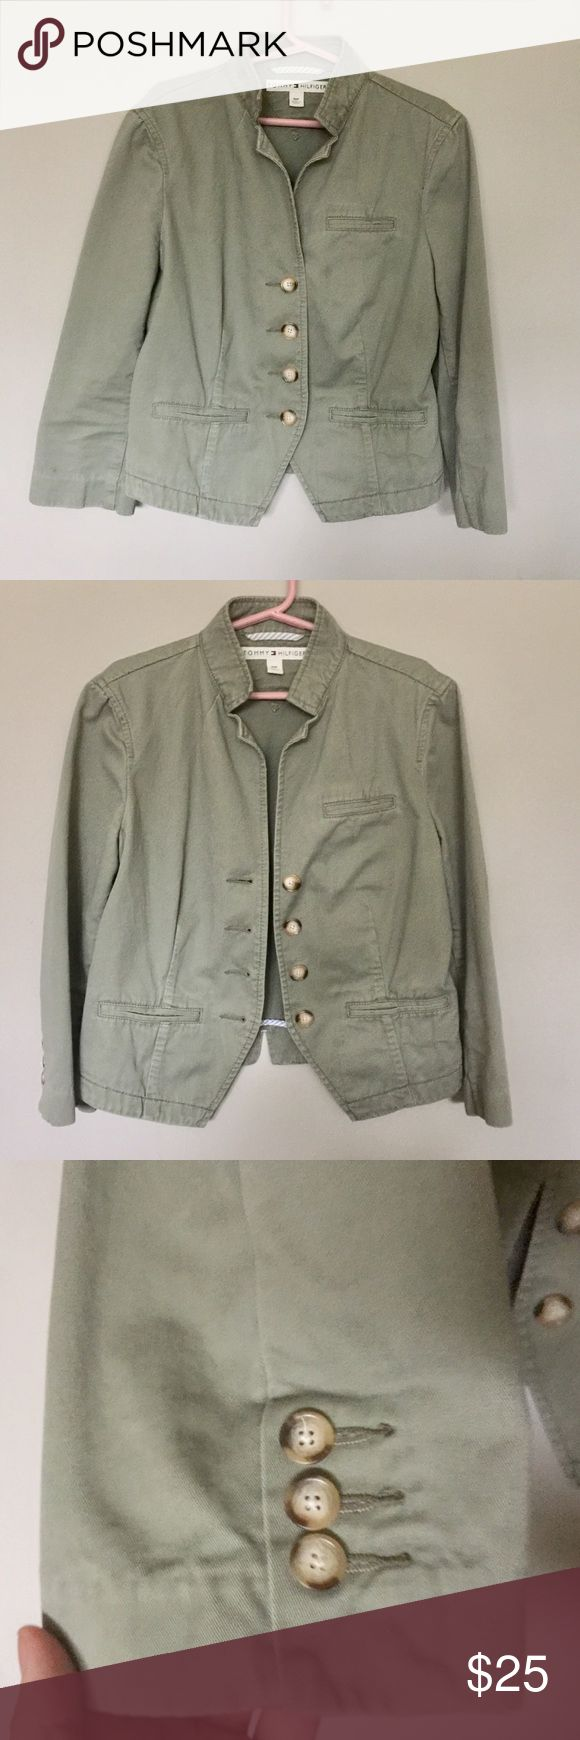 Tommy Hilfiger Green Army Jacket Cute Tommy Hilfiger Jacket.  Green, 100% cotton.  Button up. Faux Pockets Tommy Hilfiger Jackets & Coats Utility Jackets